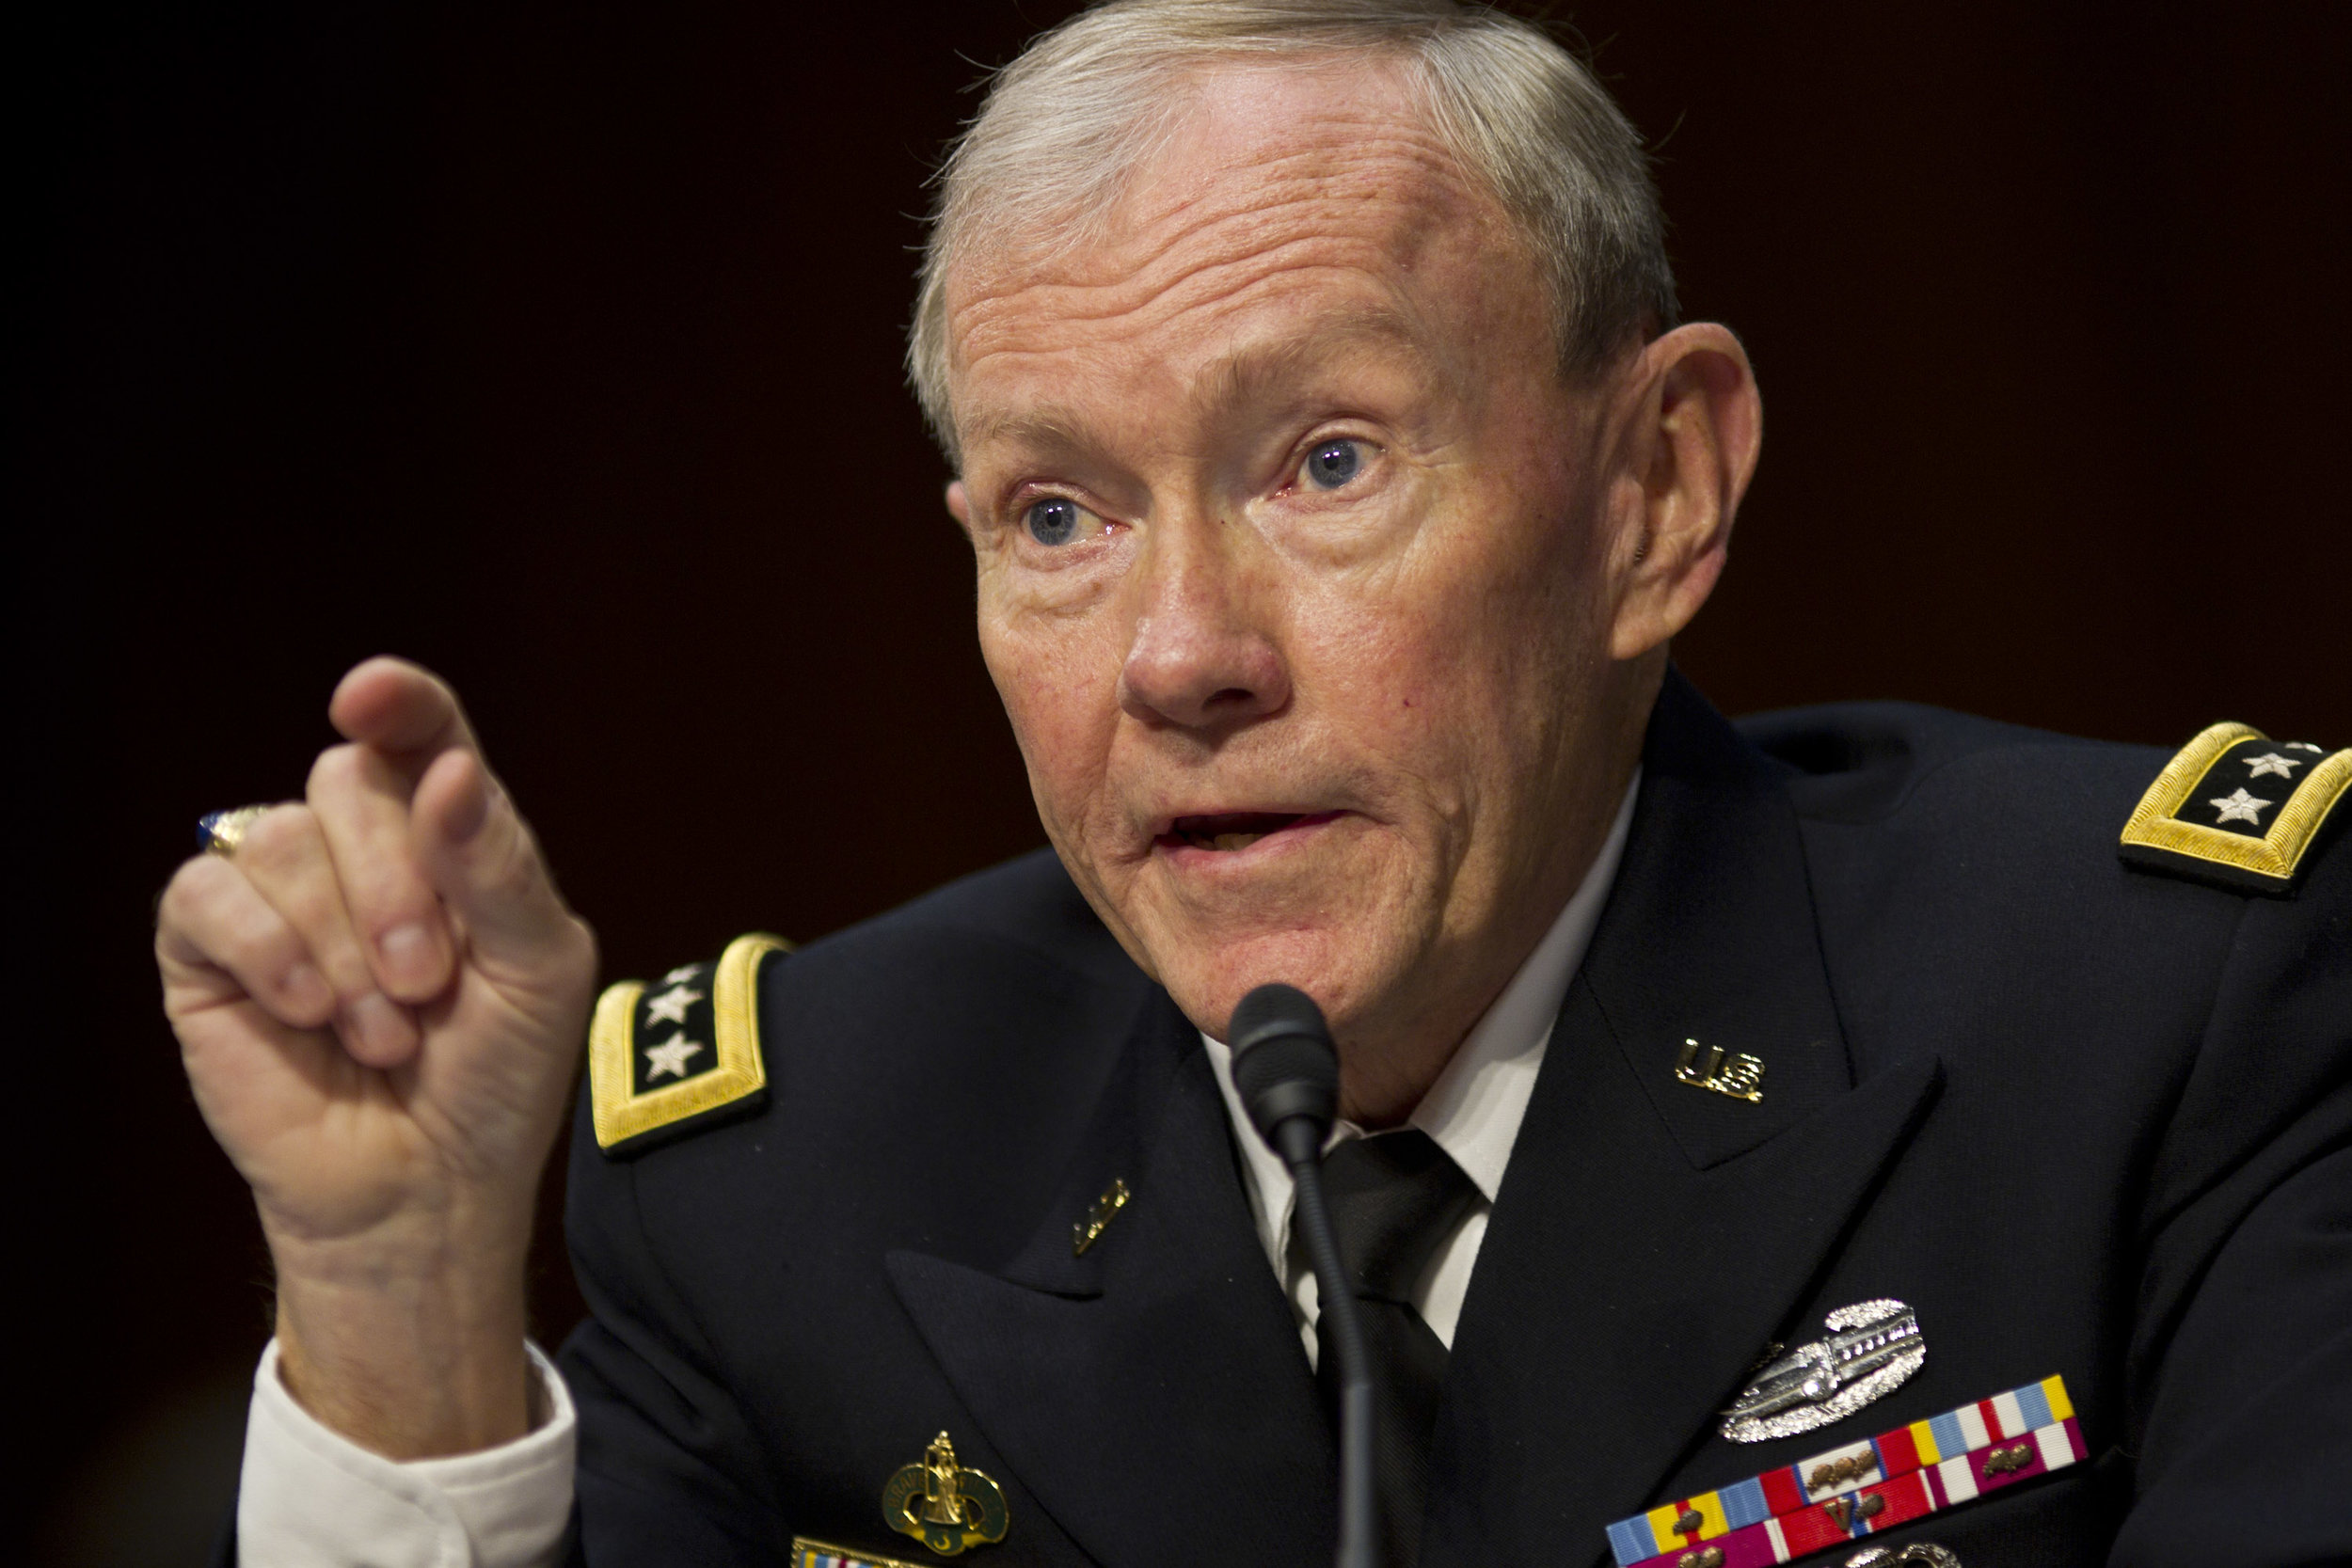 Gen. Martin Dempsey, as Chairman of the Joint Chiefs of Staff.(DOD photo)